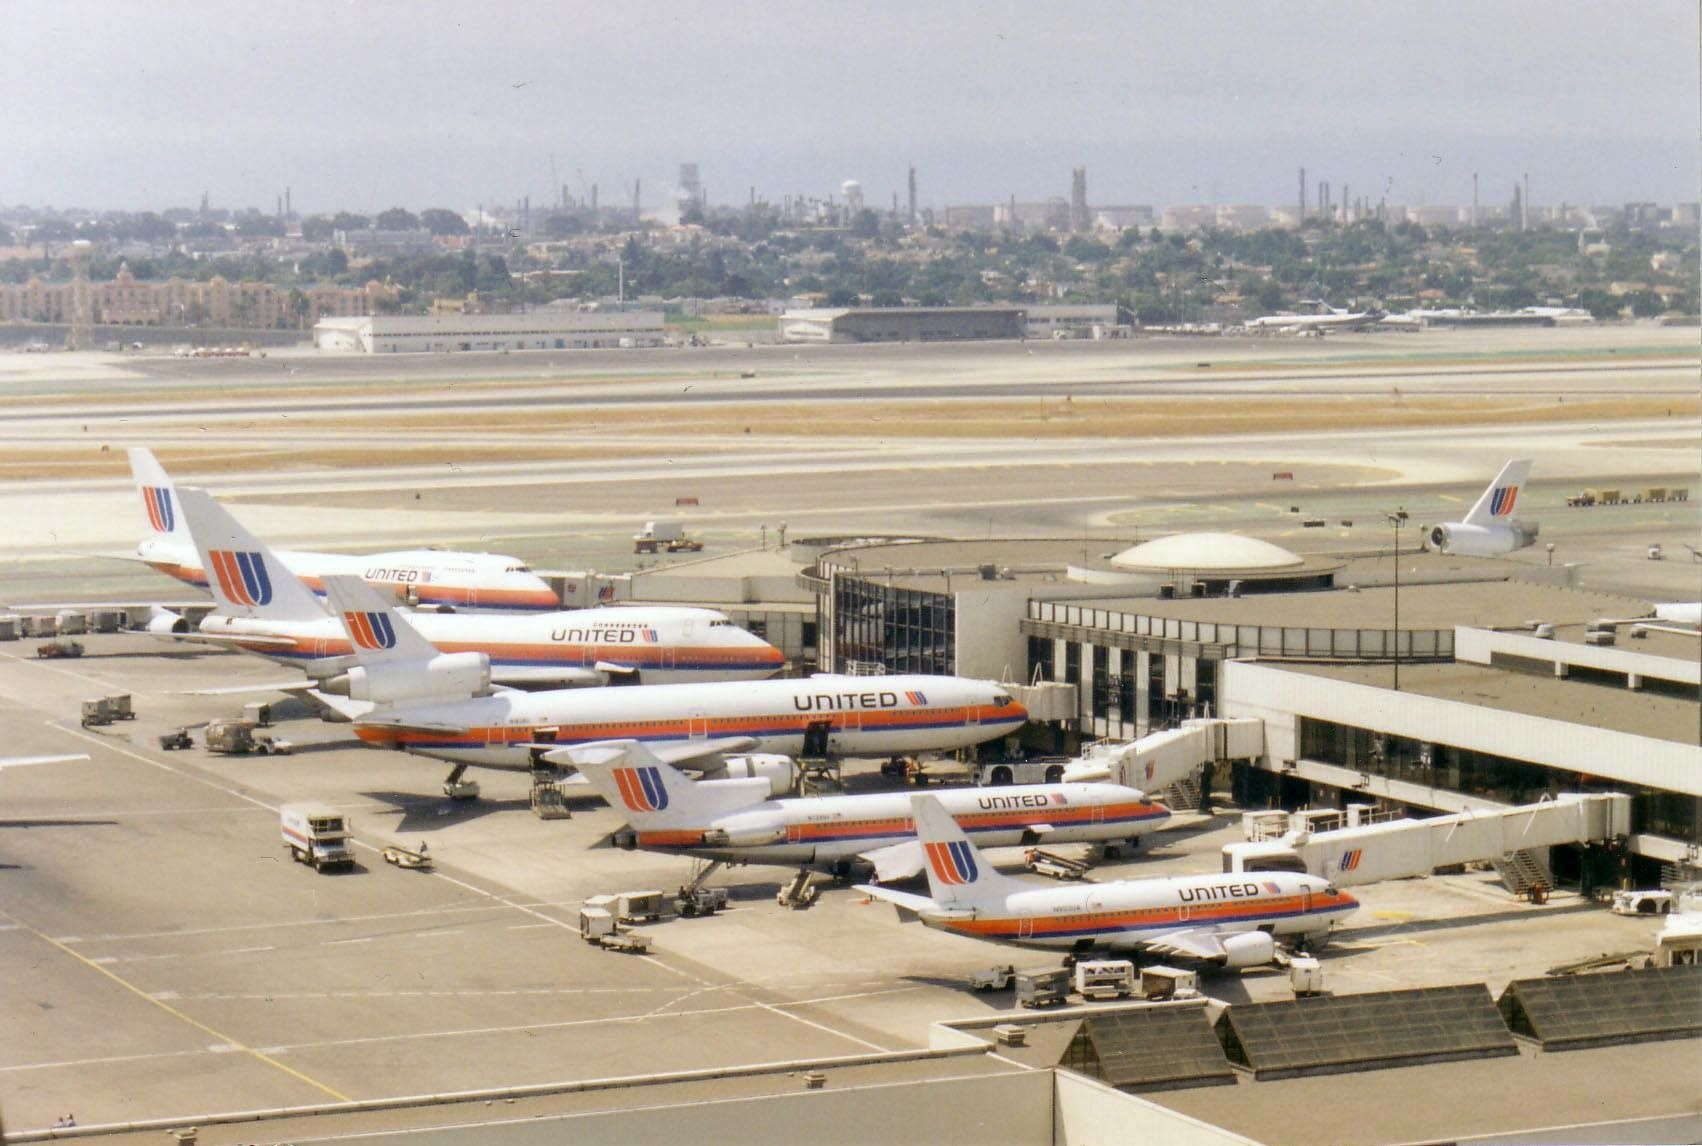 Memories United At Los Angeles International Airport Lax United Airlines Republic Airlines United Air